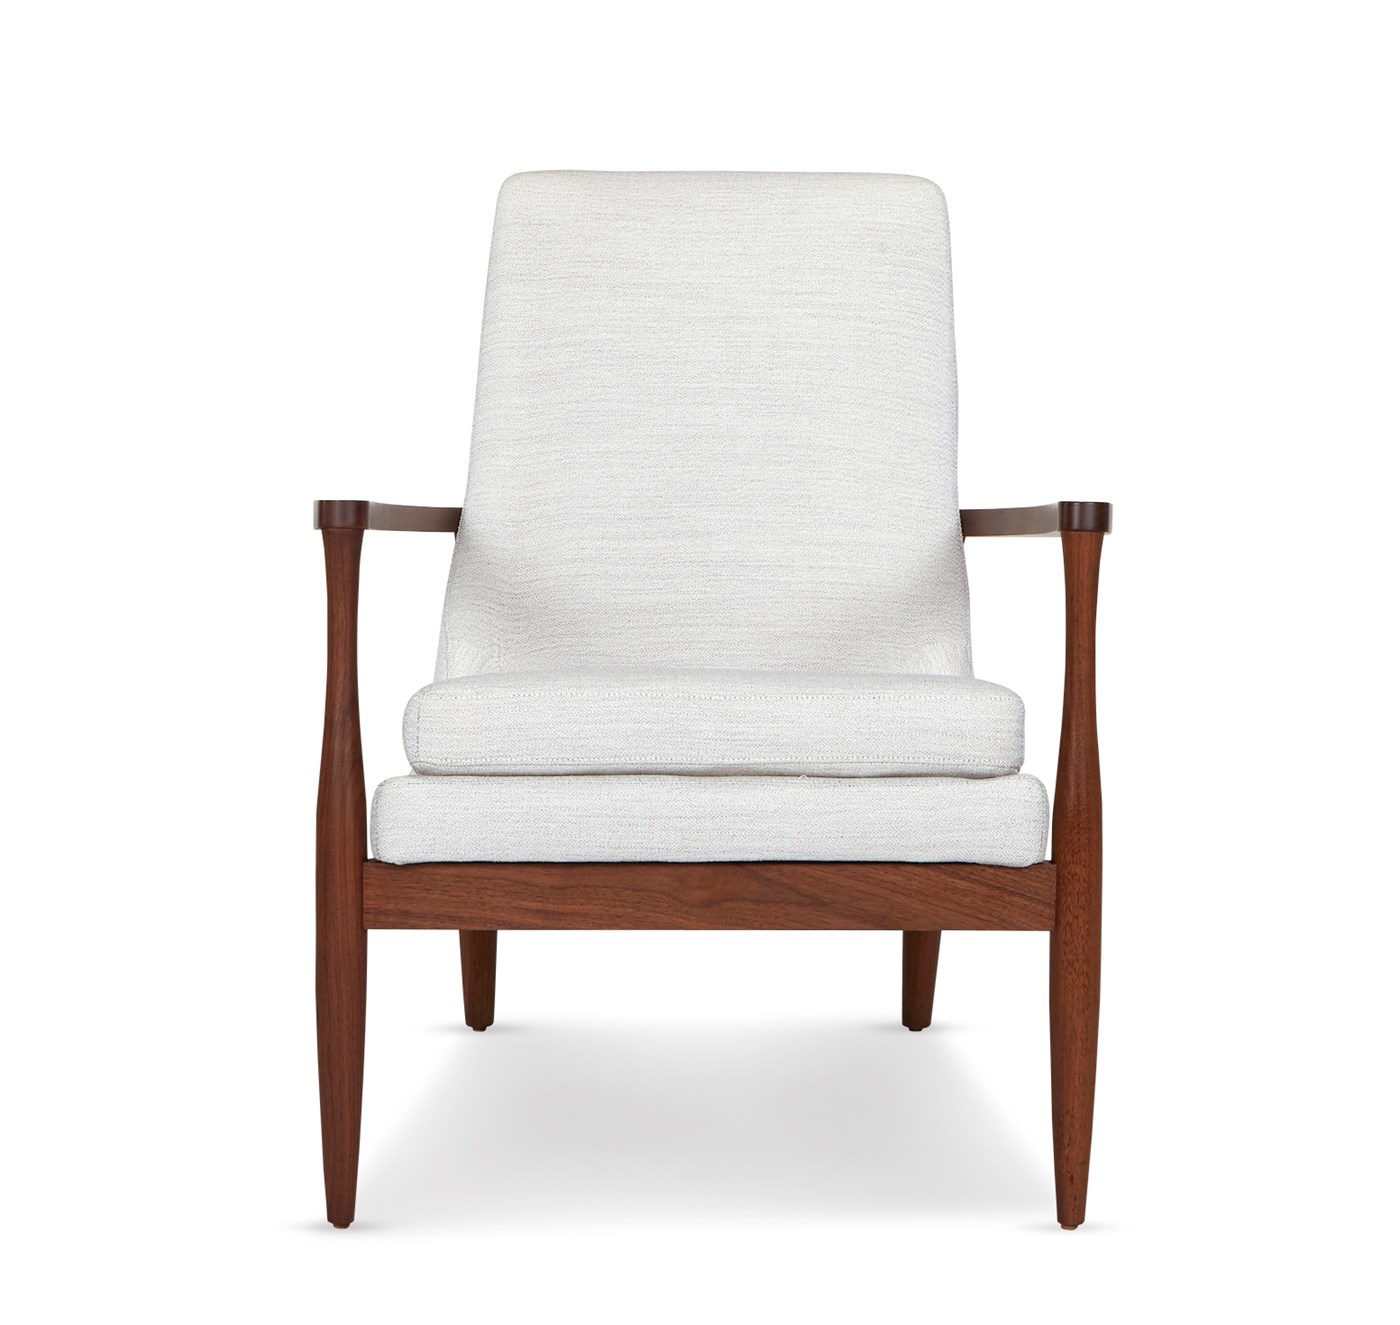 Aaron chair chairs chaises living room robb stucky for Robb and stucky bedroom furniture